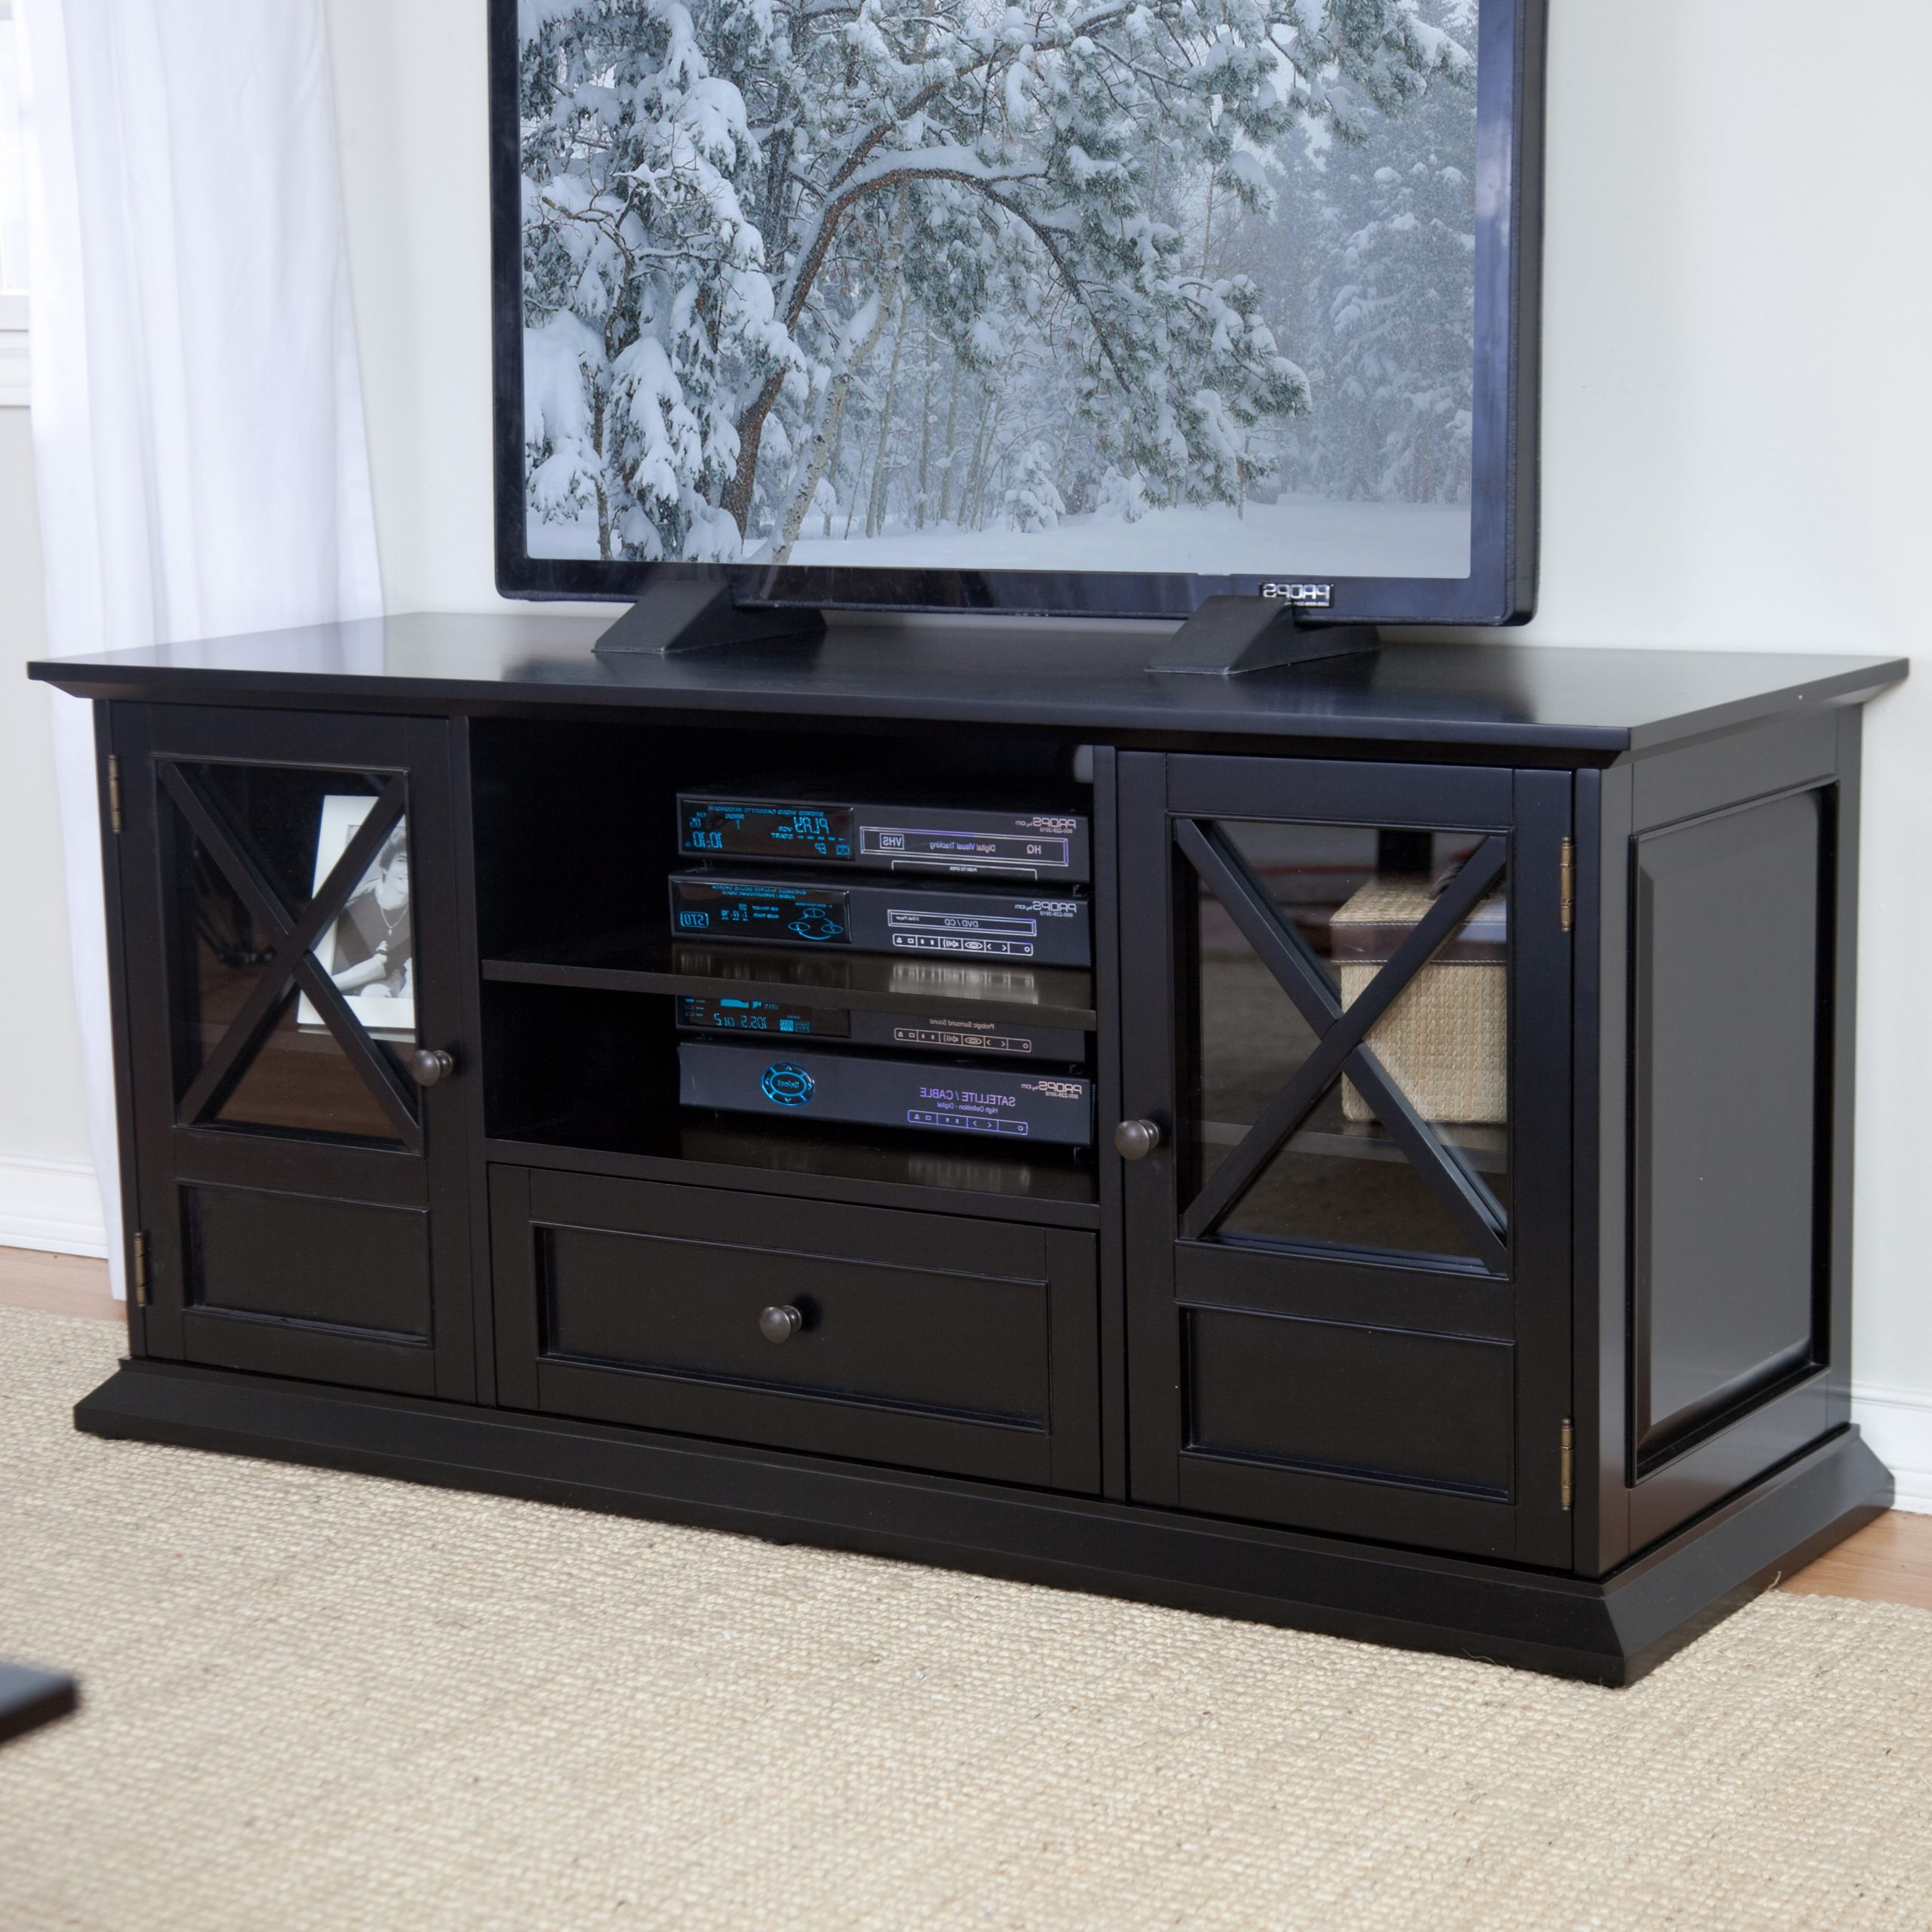 """2017 Belham Living Hampton 55 Inch Tv Stand – Black At Hayneedle With Regard To Baba Tv Stands For Tvs Up To 55"""" (View 5 of 25)"""